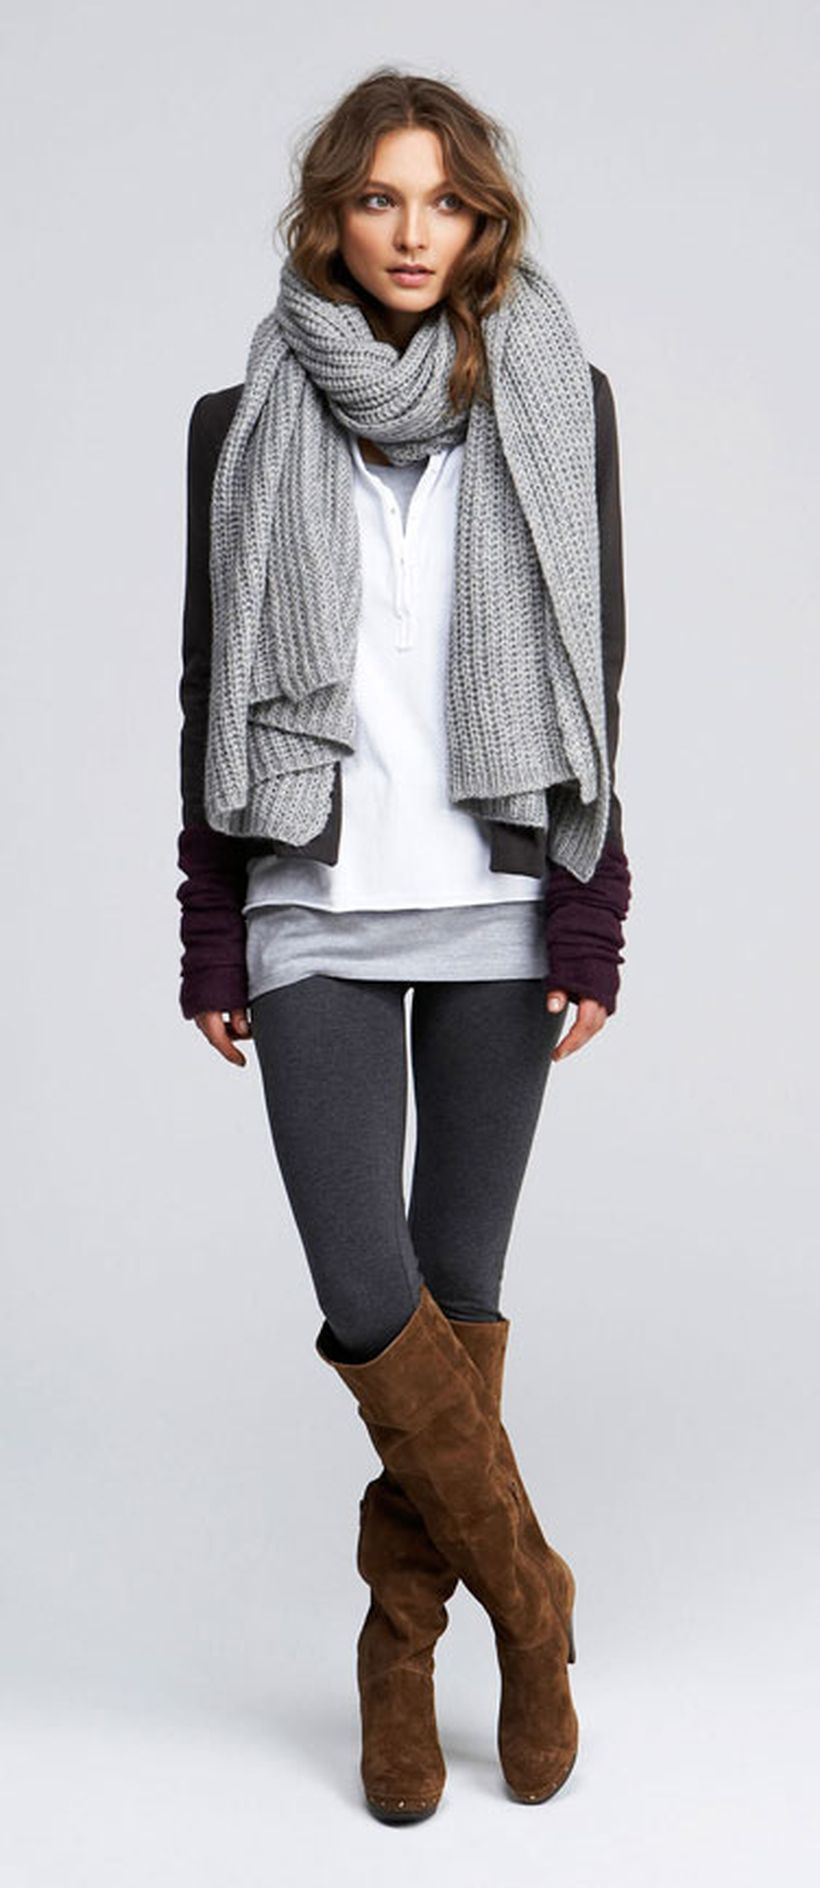 Fashionable scraves accessories ideas for cold weather 20